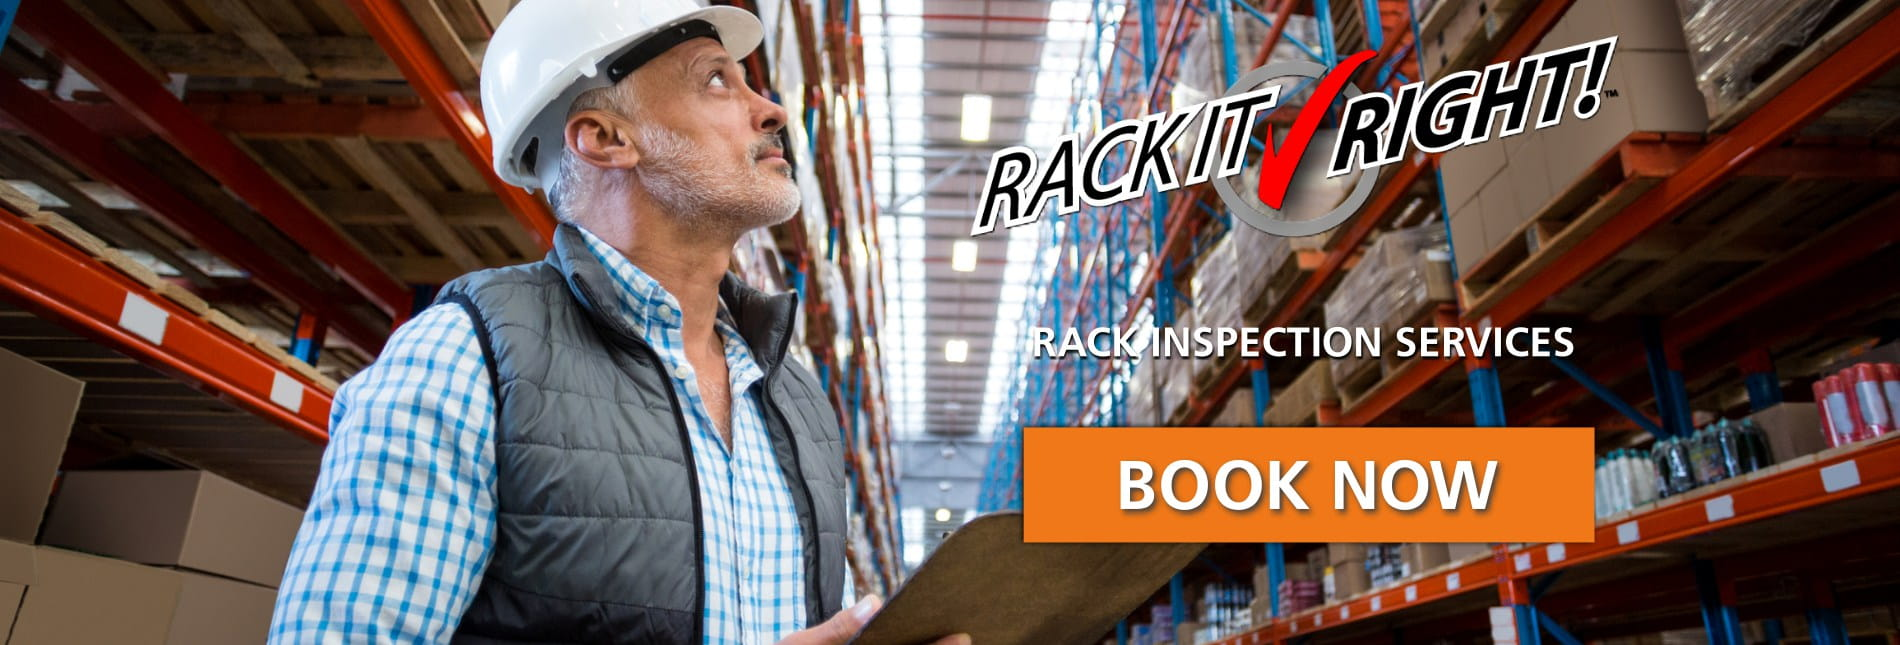 Rack-It-Right Rack Inspection Services